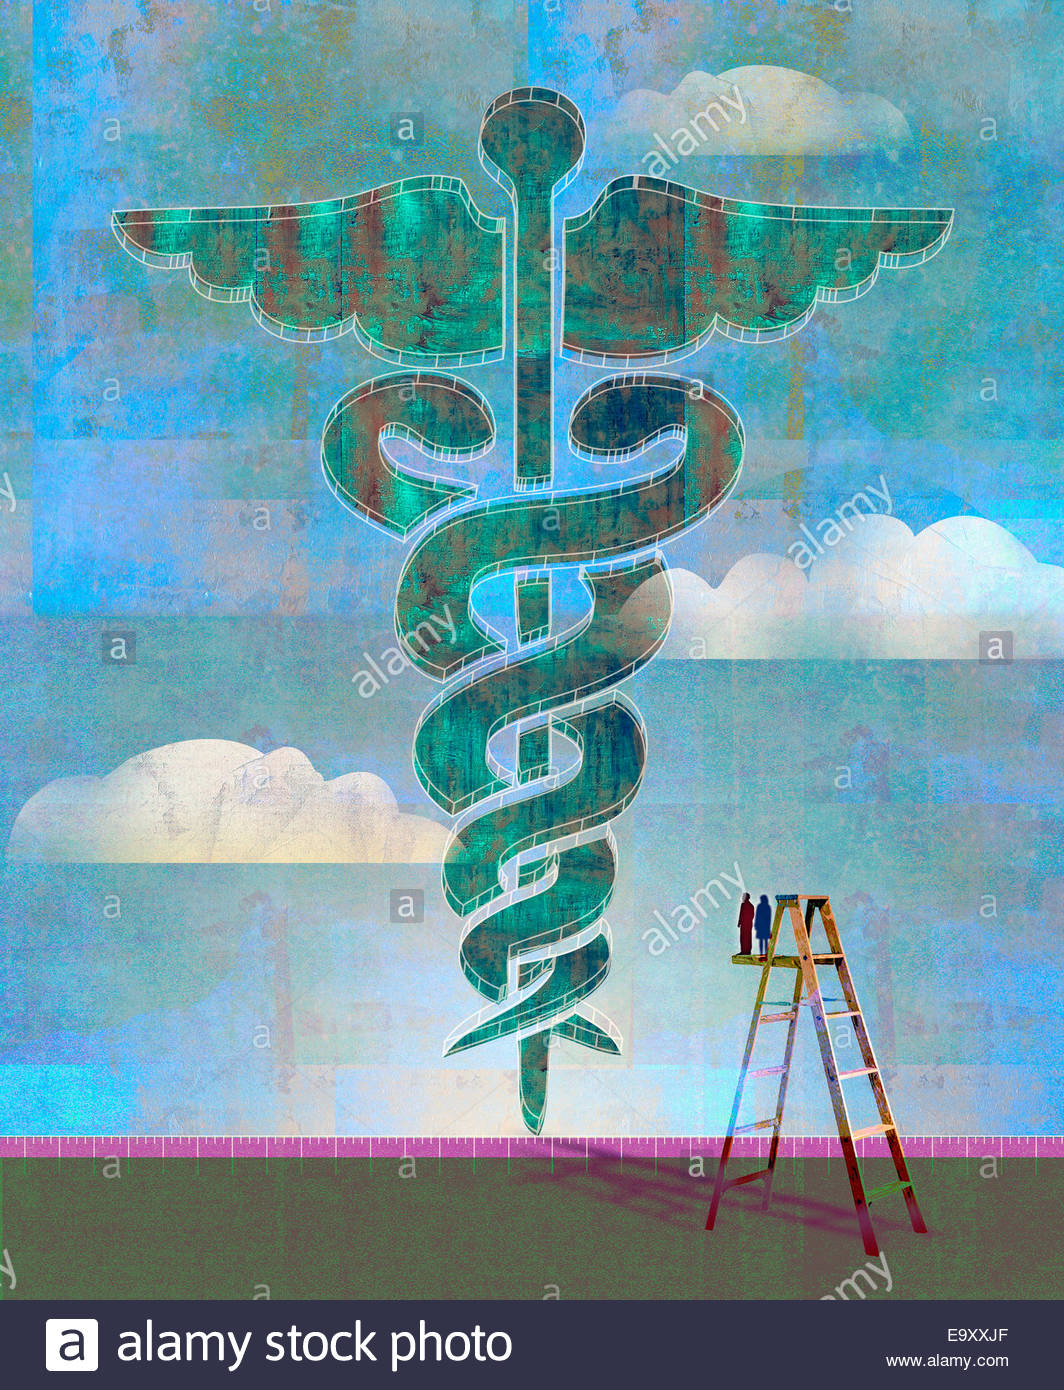 Couple on ladder looking at enormous caduceus - Stock Image